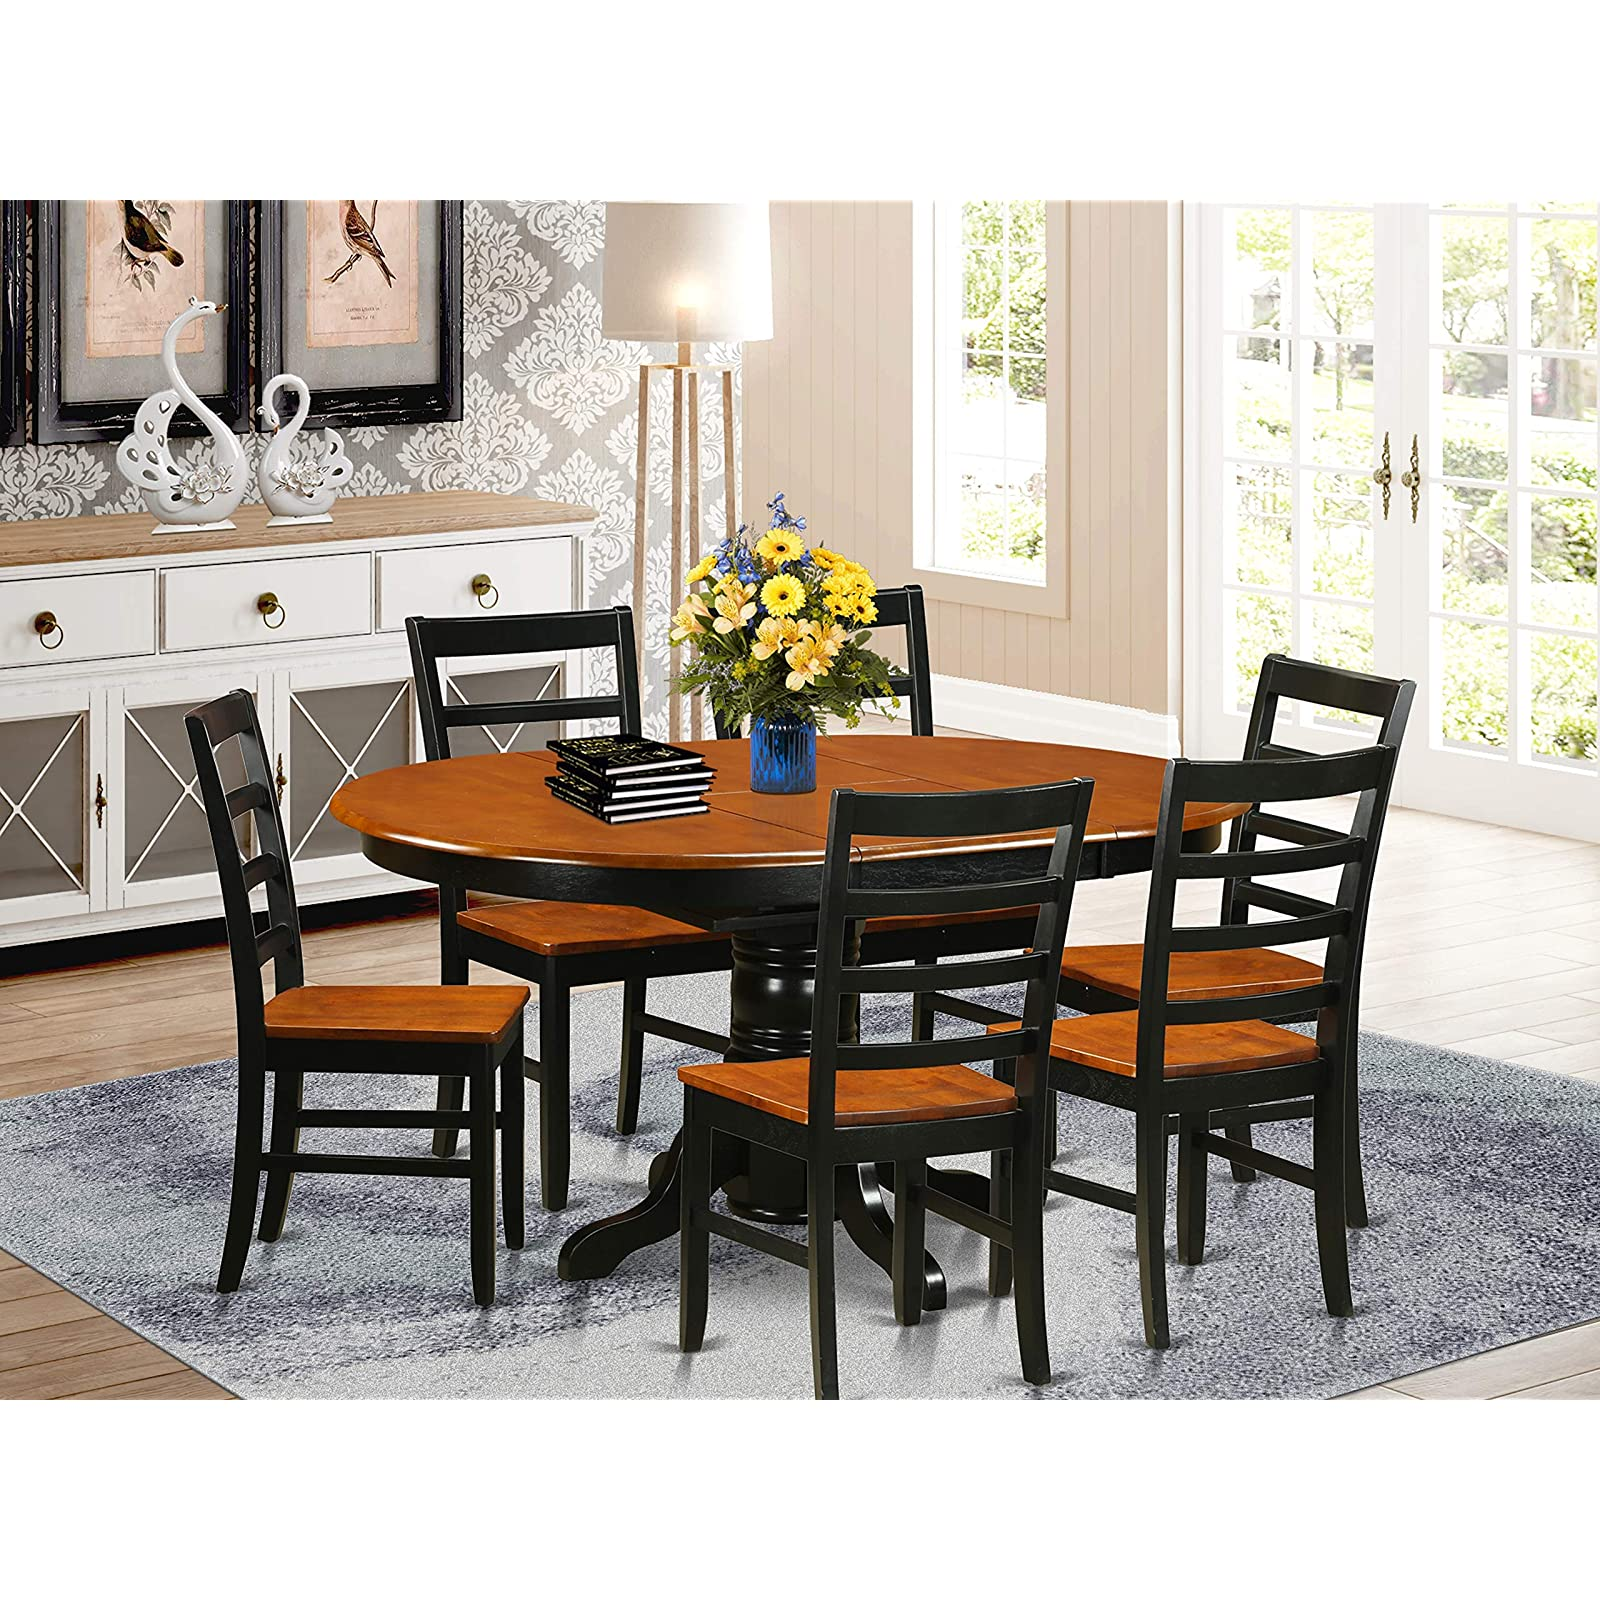 East West Furniture Modern Dining Table Set 6 Great Wood Chairs A Wonderful Wood Dining Table Cherry Color Wooden Seat Cherry And Black Butterfly Leaf Round Dining Table Walmart Com Walmart Com